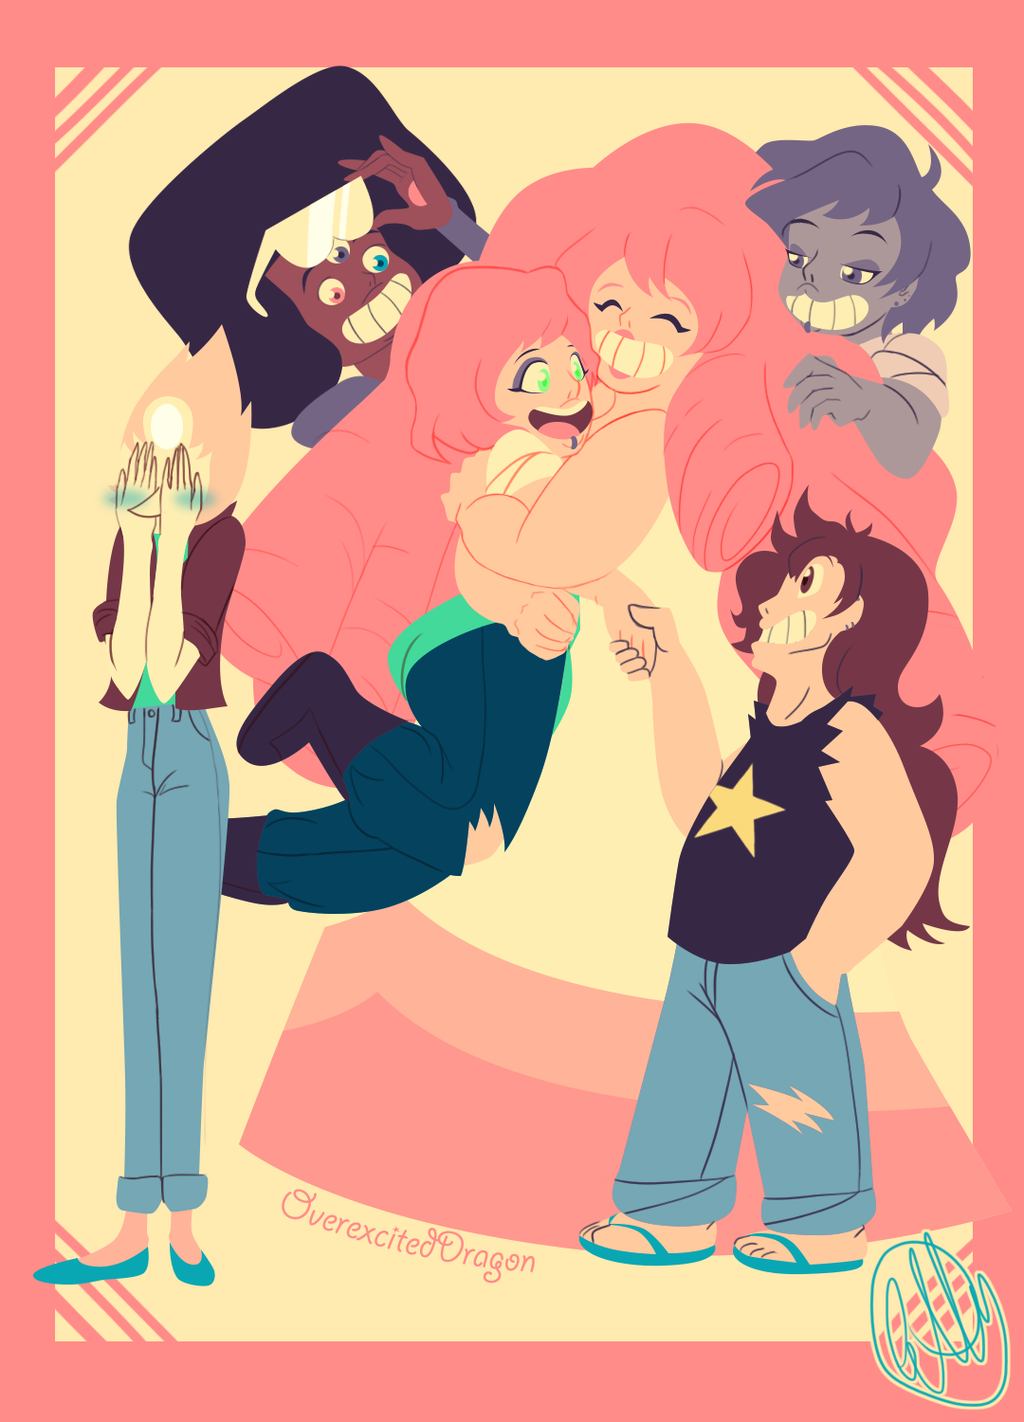 AU??? Idk Pearl introduces her new gf to the family. Rose is so happy and loves Mystery Girl's hair, Greg is secretly relieved and likes her piercings, Amethyst shapeshifts into the girl just to annoy...